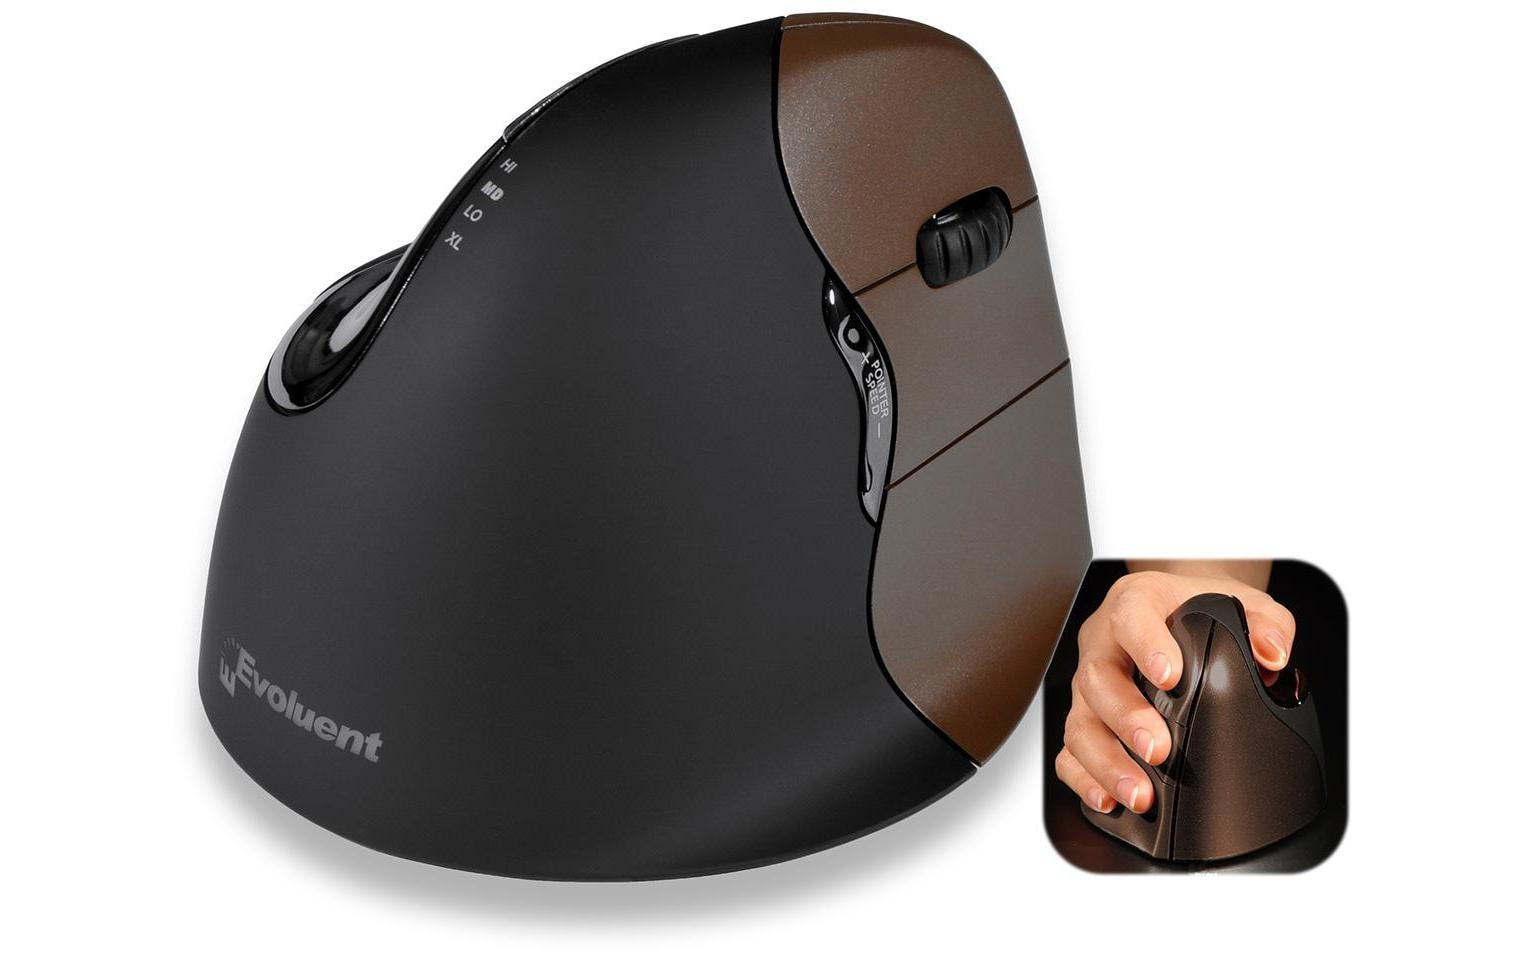 Image of Ergonomische Maus, Evoluent, »Vertical 4 Small Wireless«